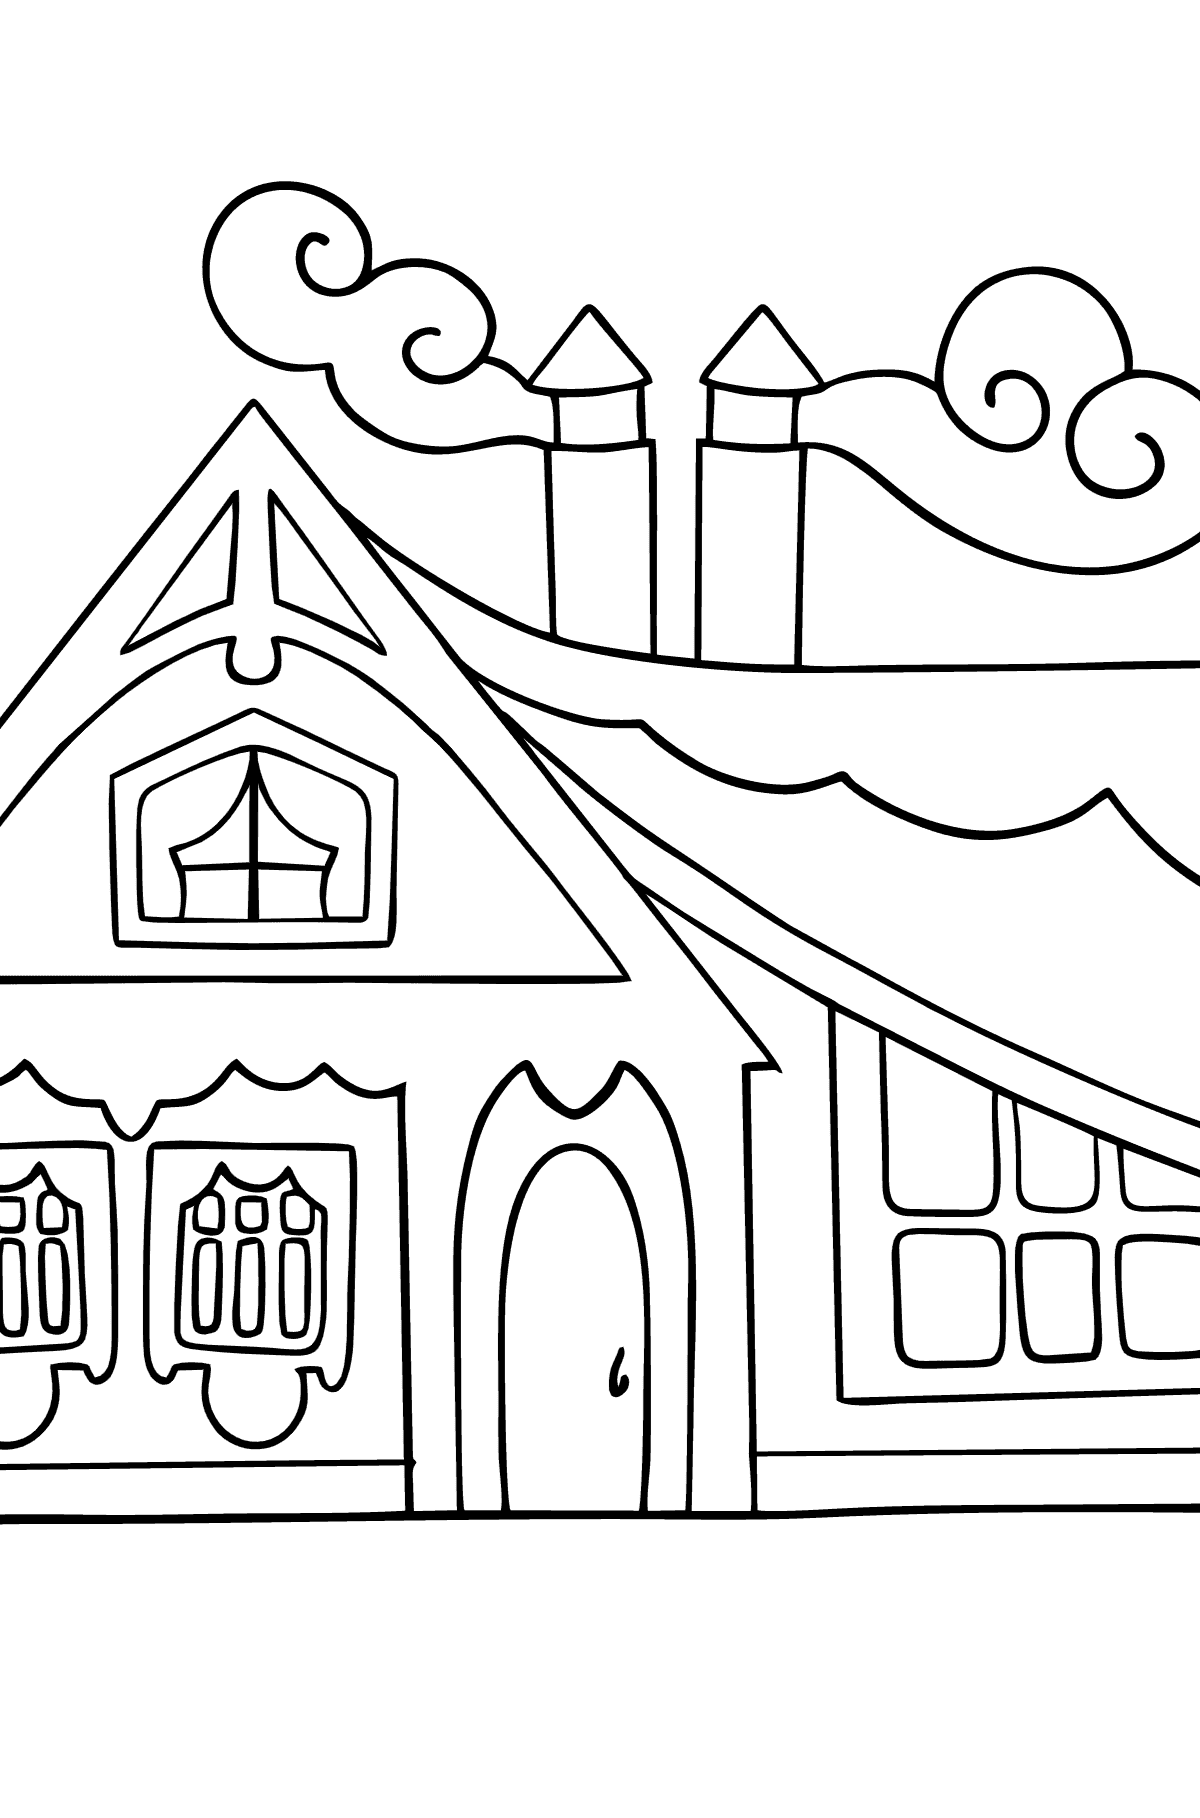 Complex Coloring Page - A Tiny House for Kids